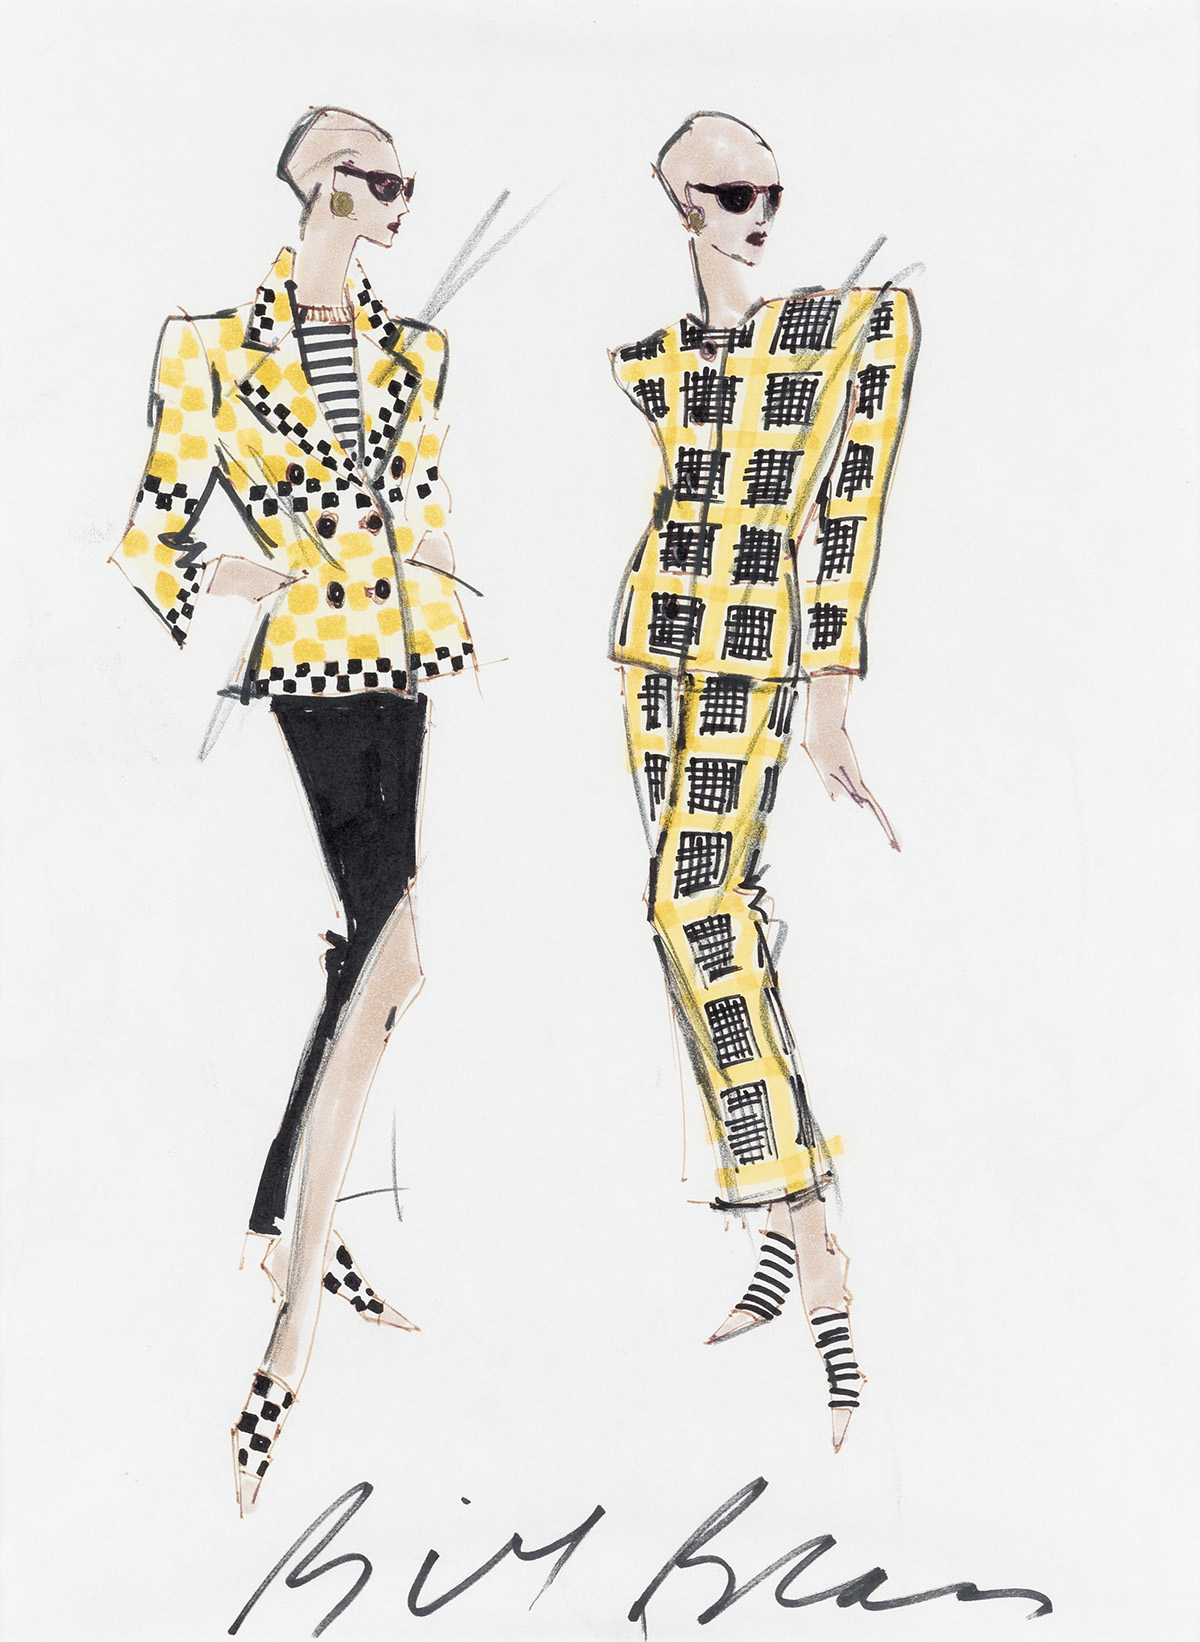 BILL BLASS. Power Suits and Shoulder Pads.